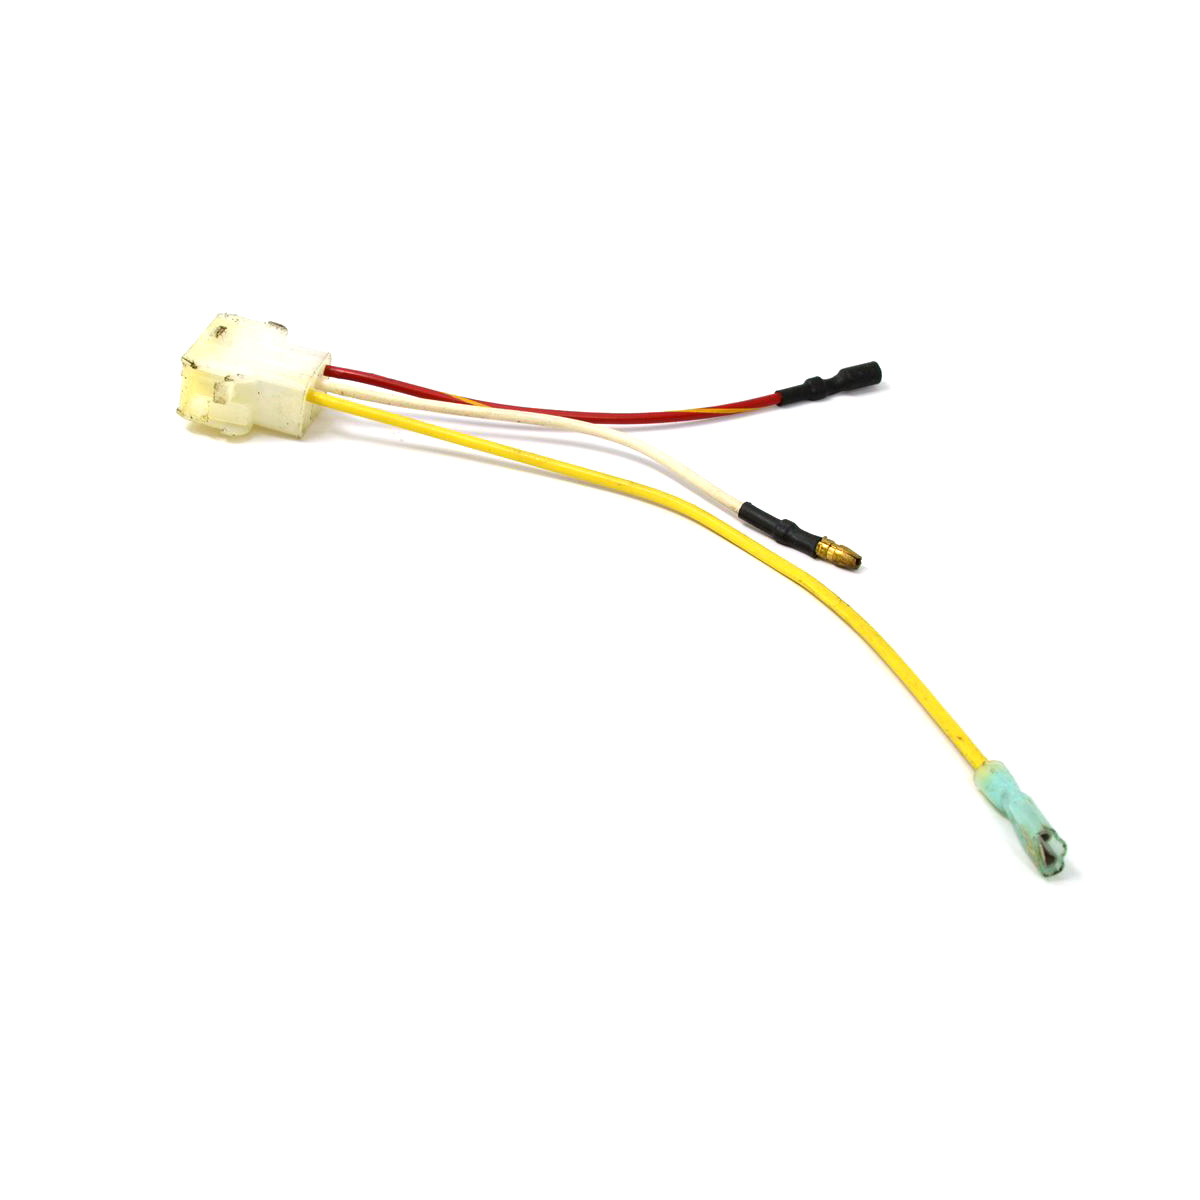 Kawasaki Wire Harness Simple Wiring Diagram 2008 Teryx Scag Adapter 483529 Scagparts Com 750